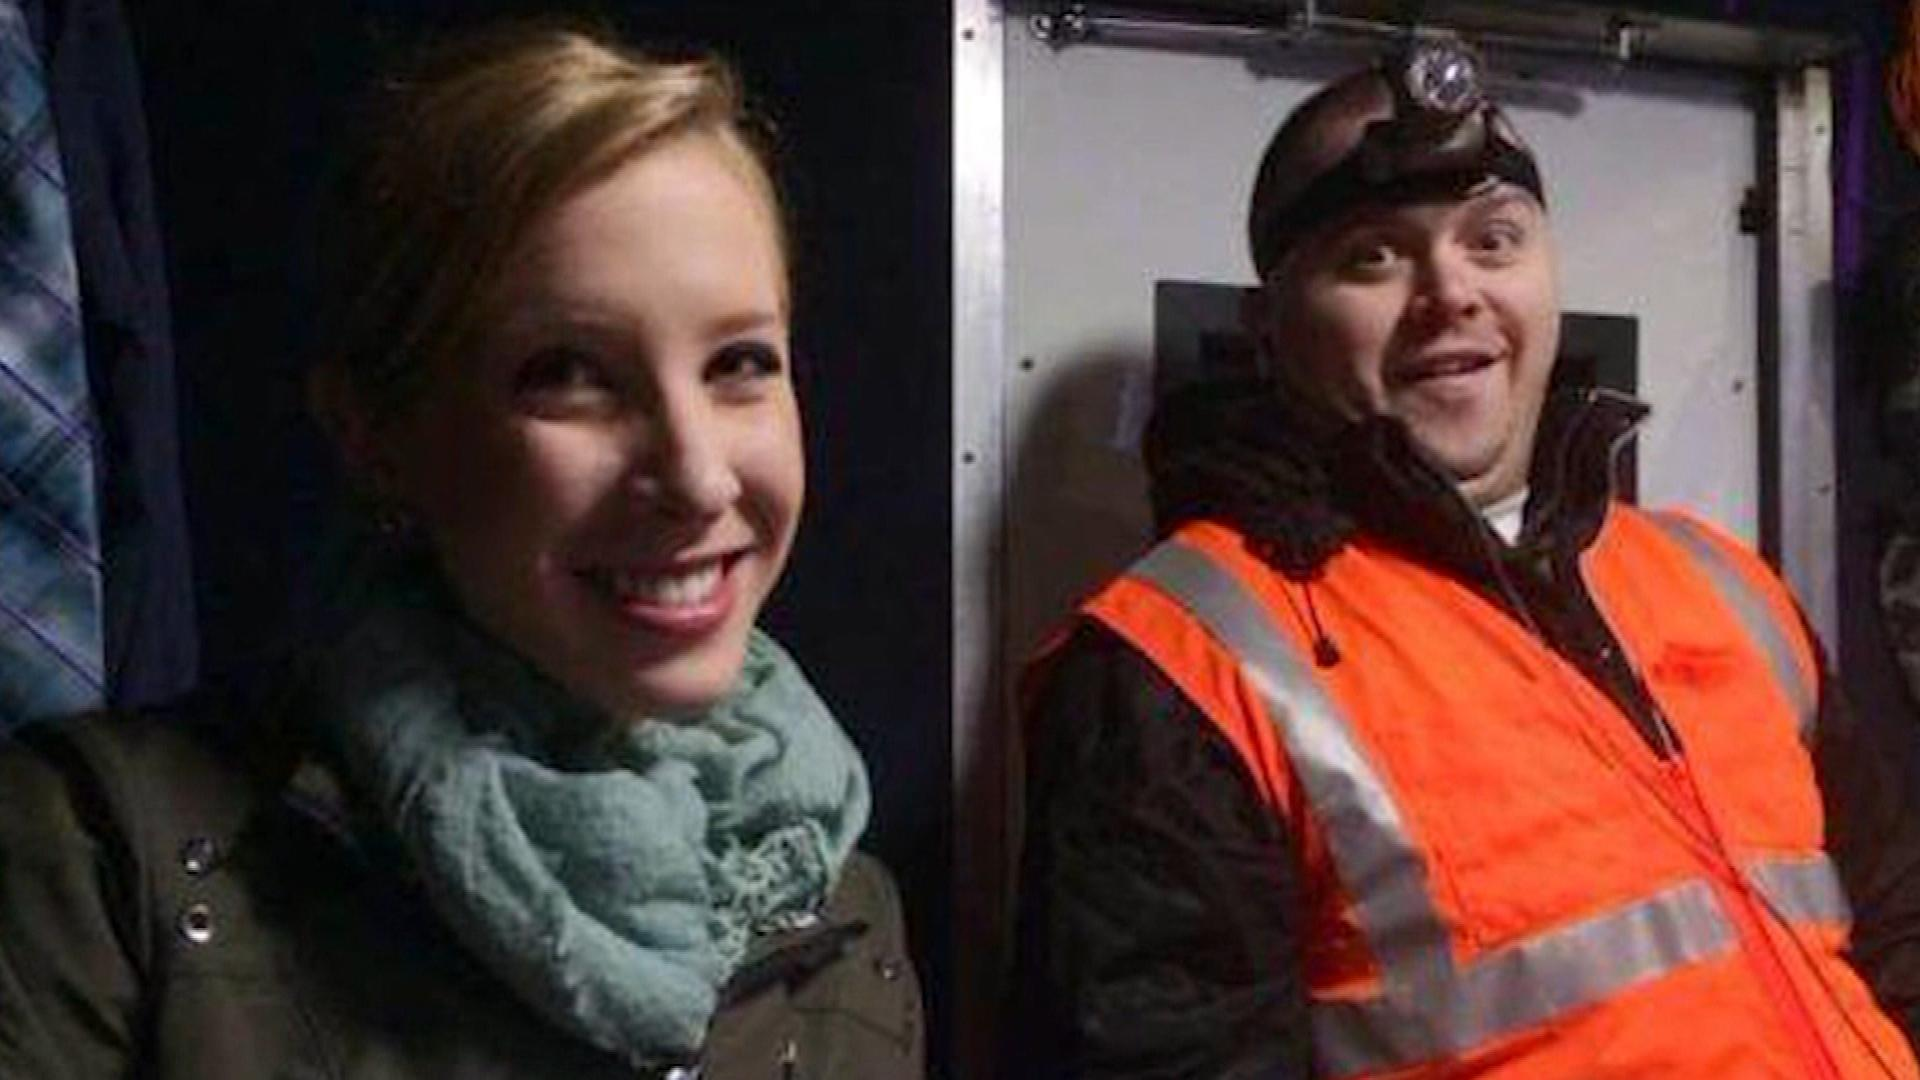 Alison Parker and Adam Ward (credit: CBS)